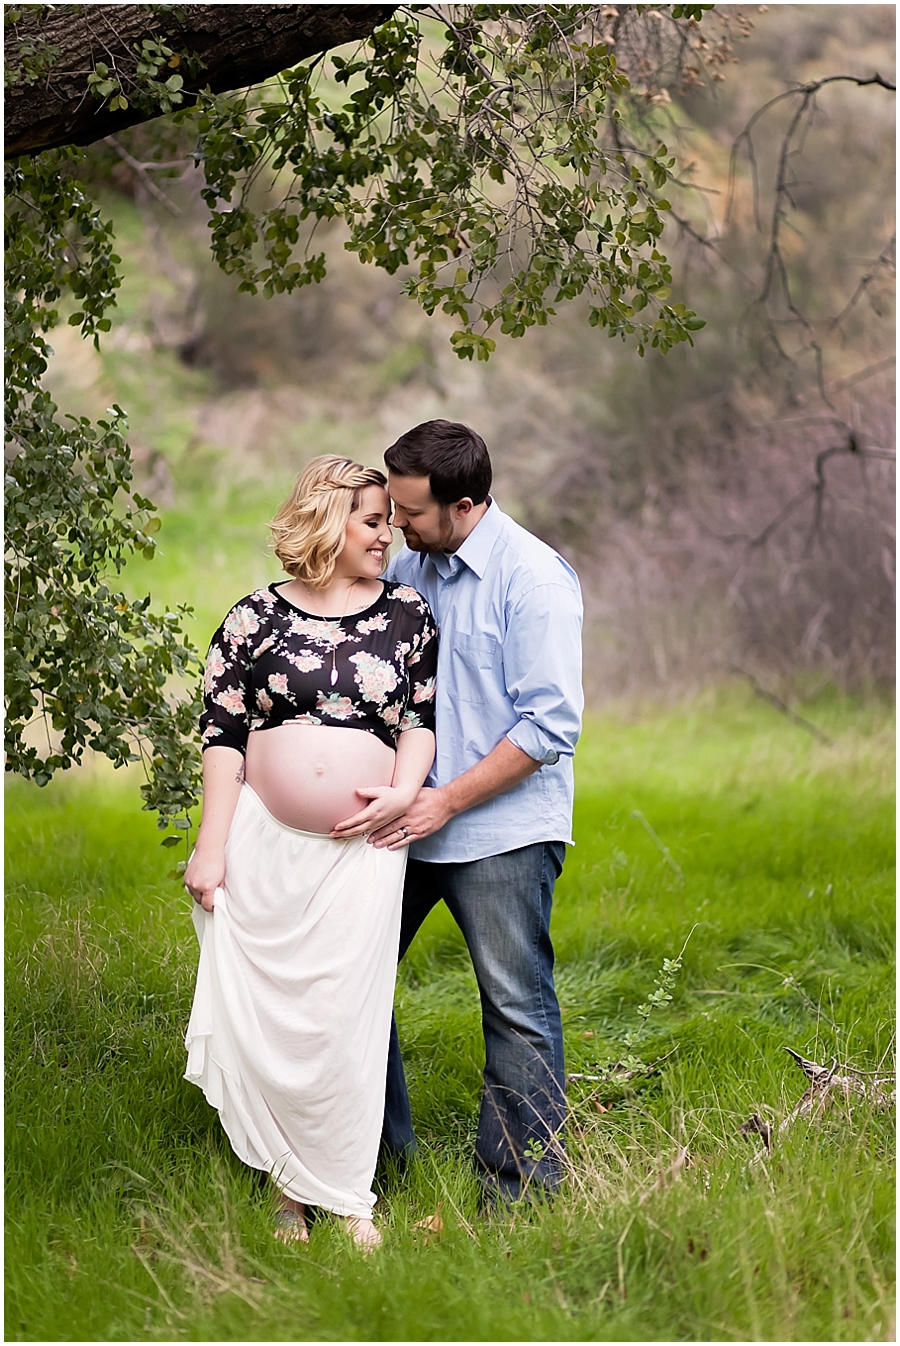 Maternity Portraits Outdoors under an Oak Tree by Just Maggie Photography -- Los Angeles Maternity and Newborn Photographer